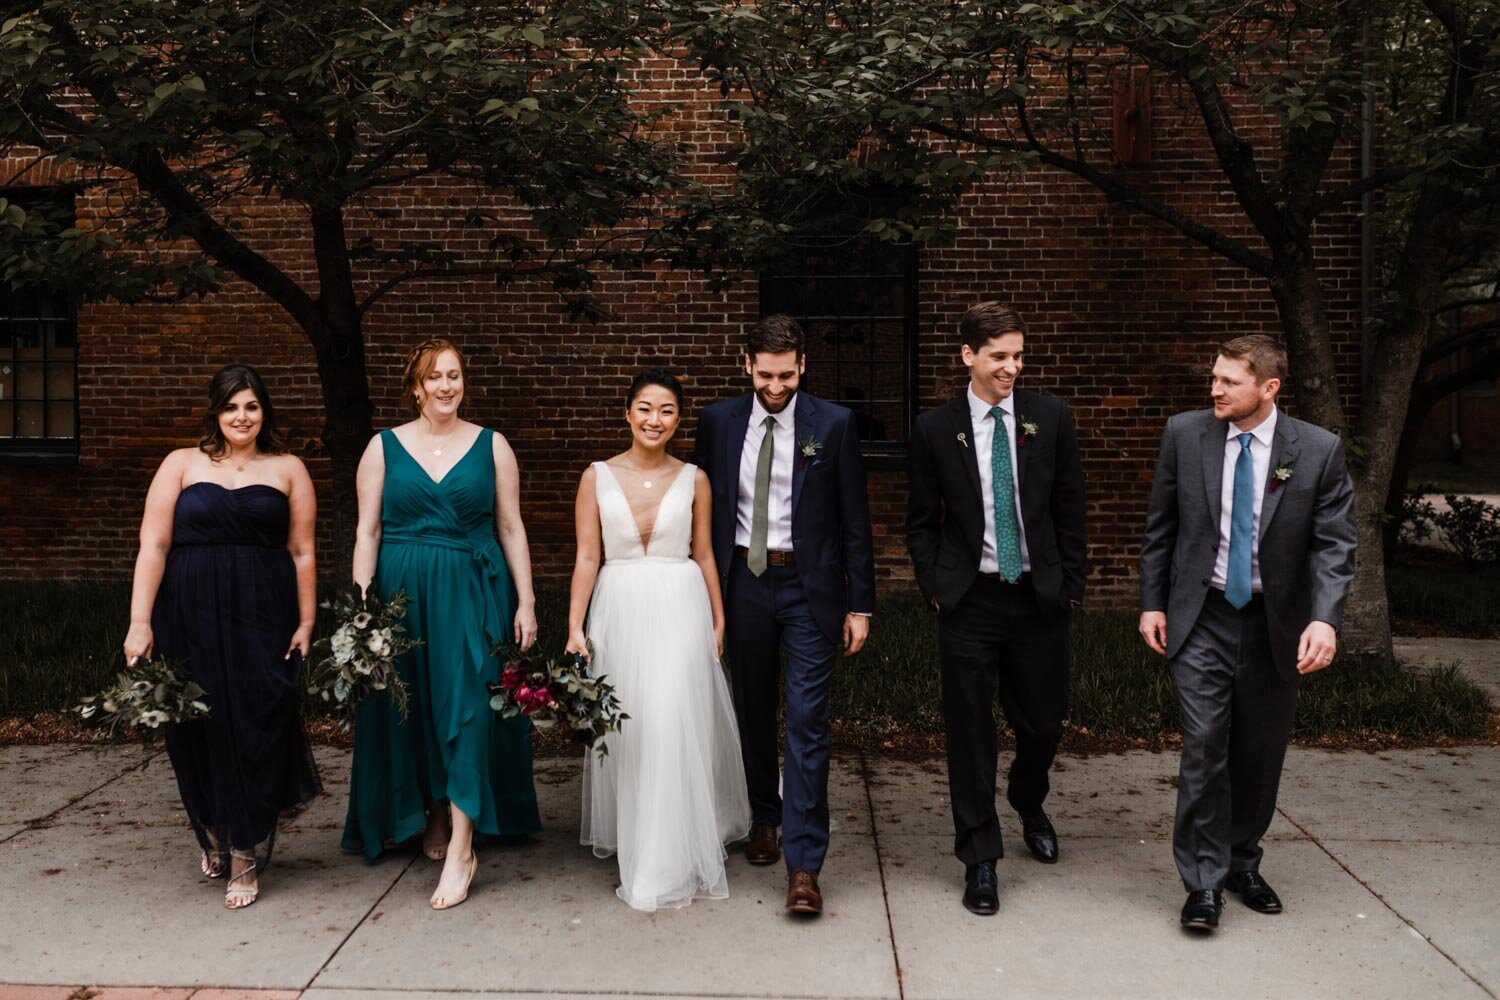 Mt Washington Mill Dye House industrial Baltimore wedding by Barbara O Photography-160.jpg